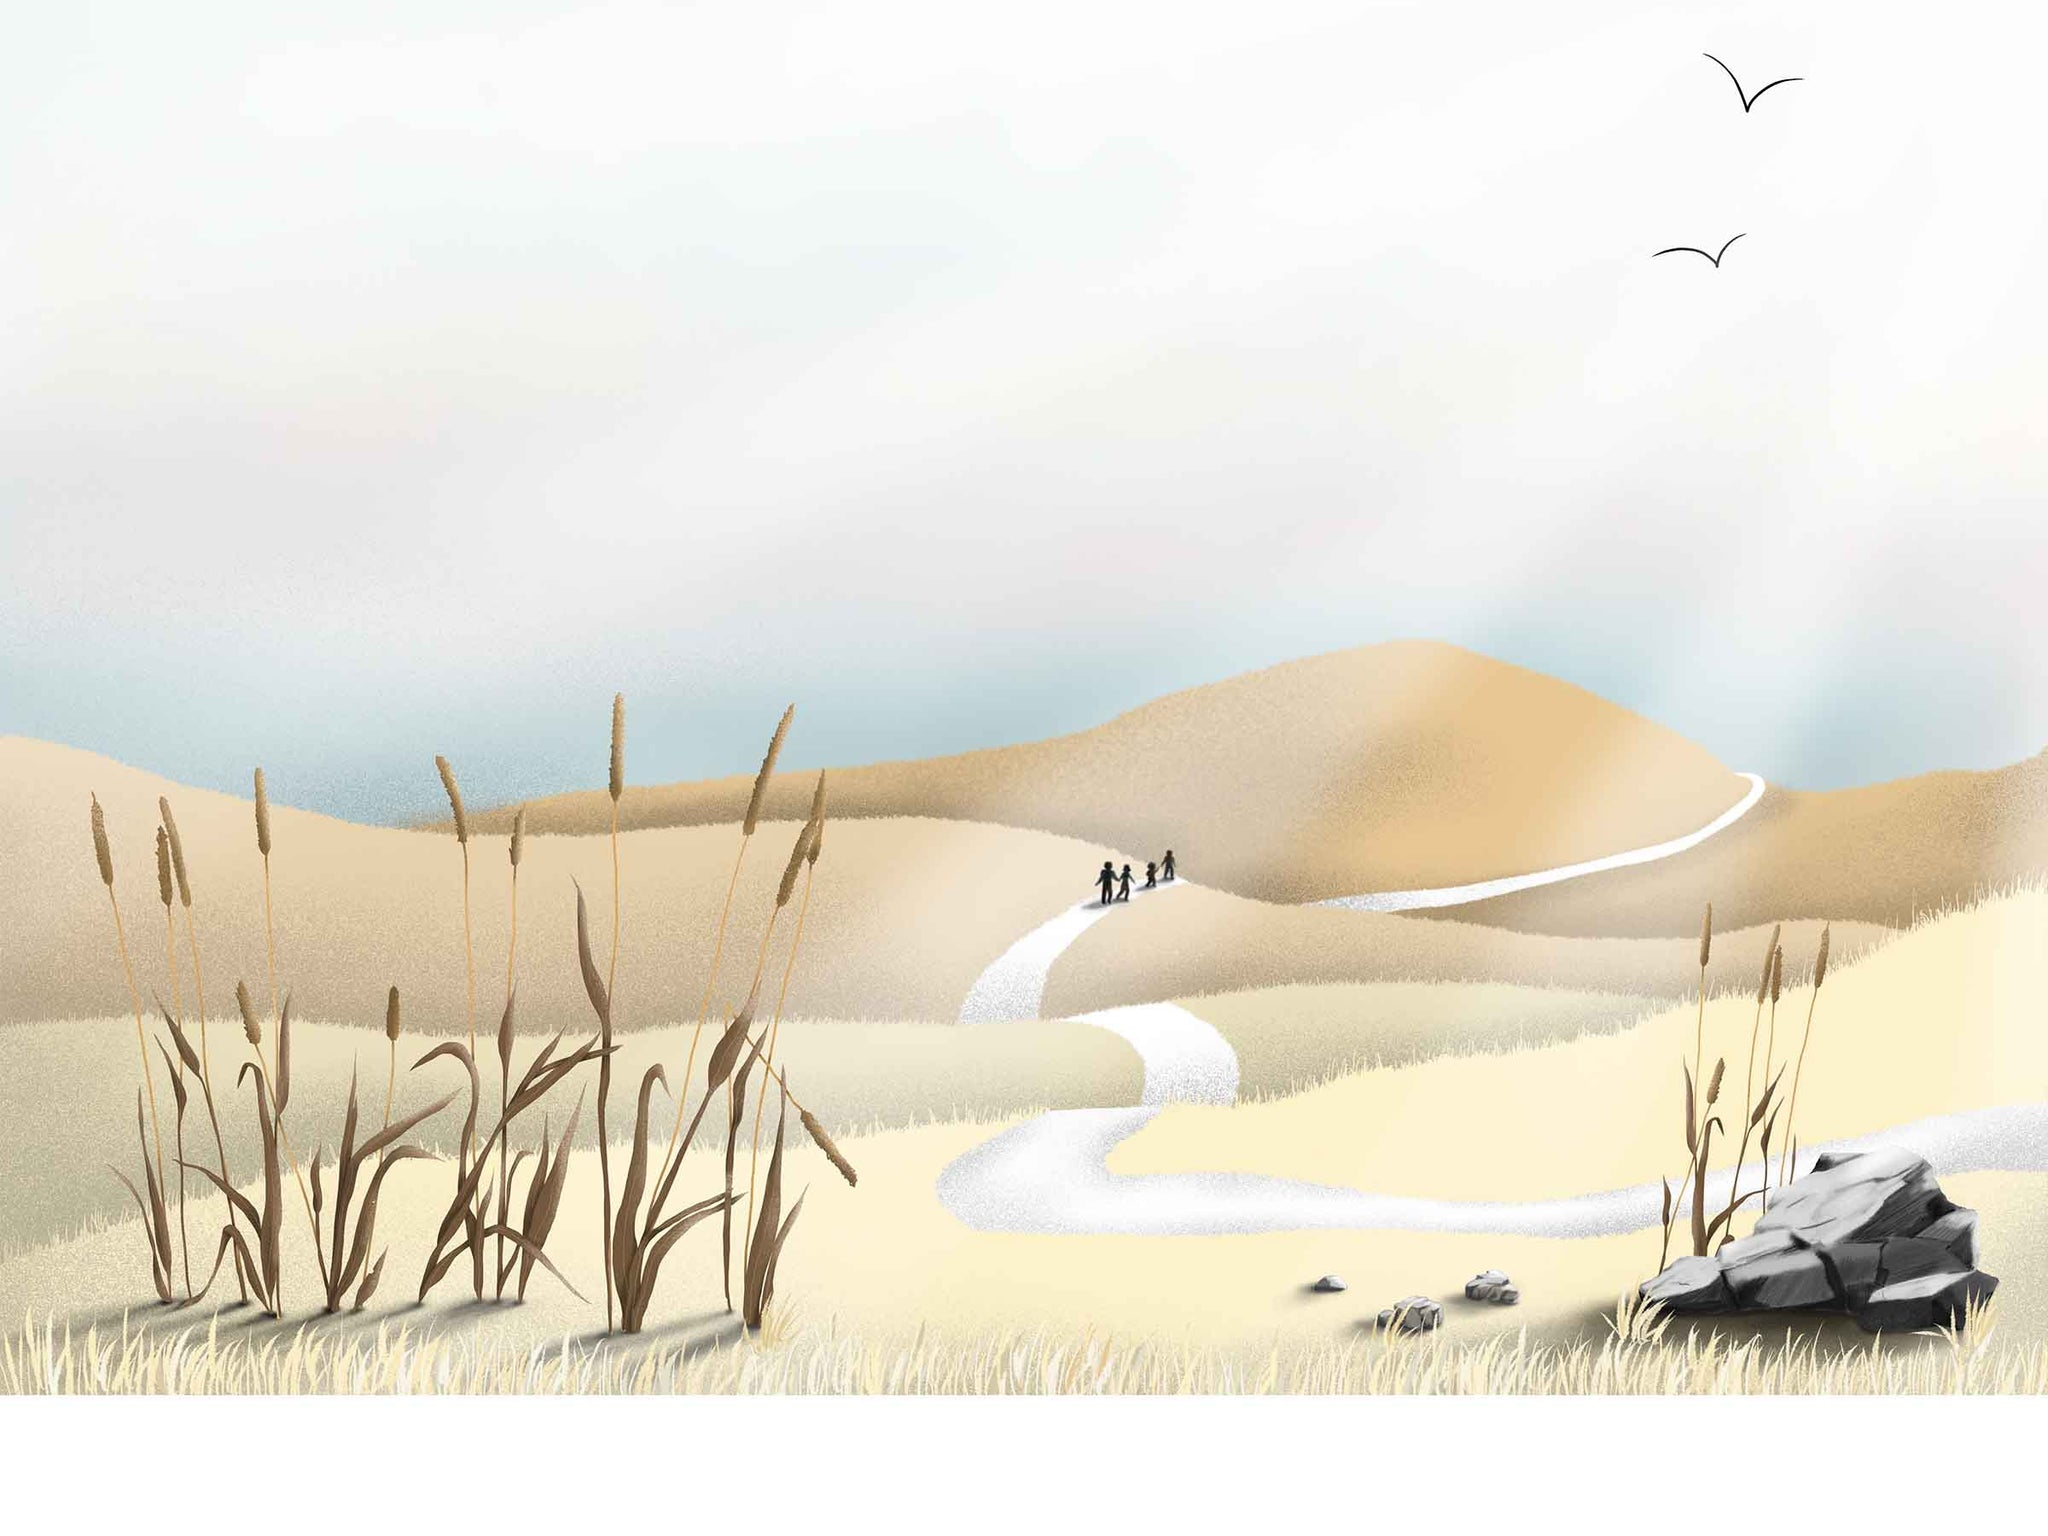 an illustration of nature, hills, family walking down the road